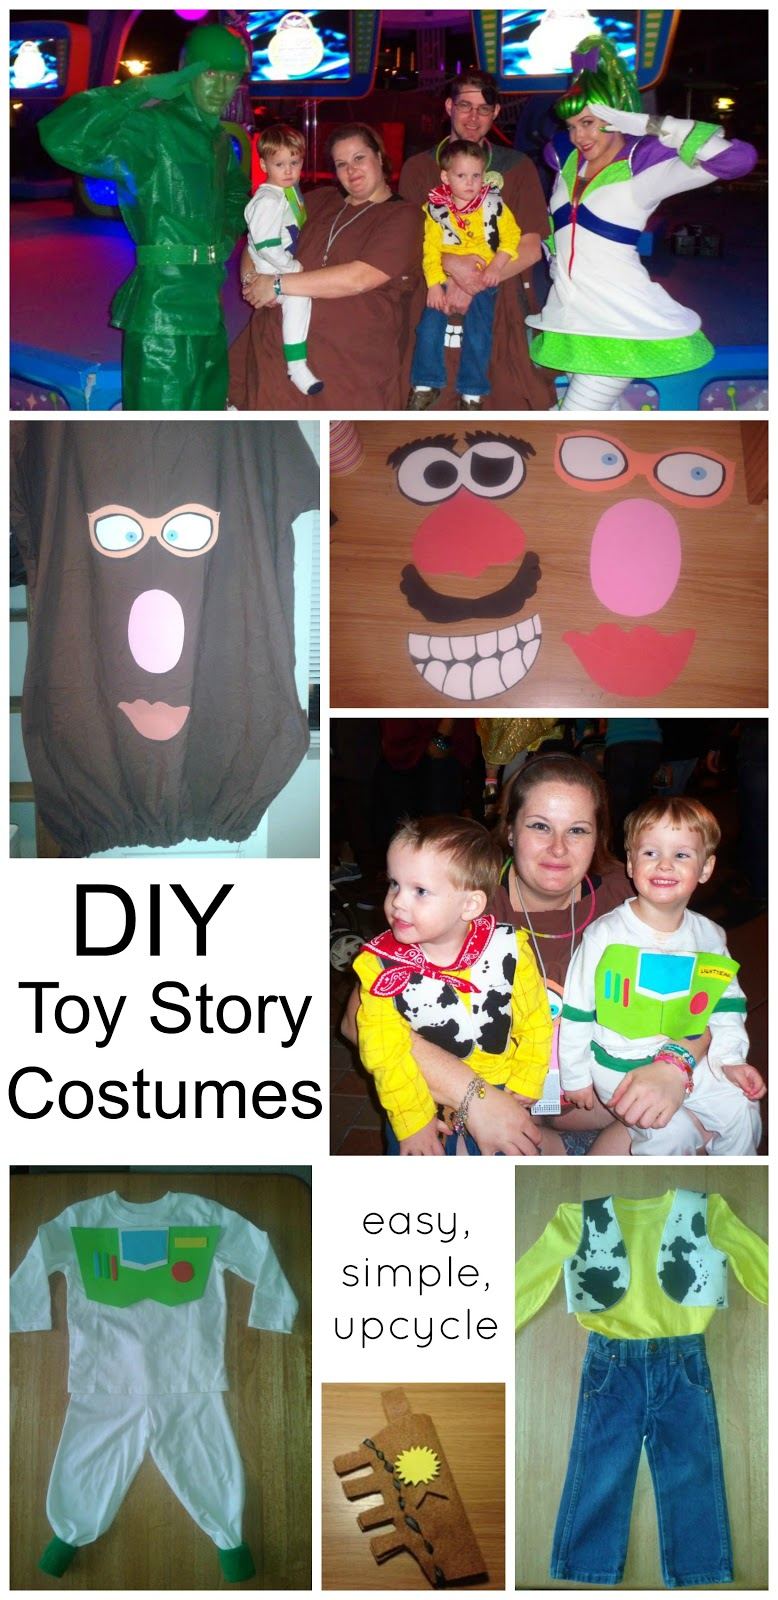 Halloween Costume Ideas For Family Of 3 With Toddler.Coco And Twins Halloween Costume Ideas